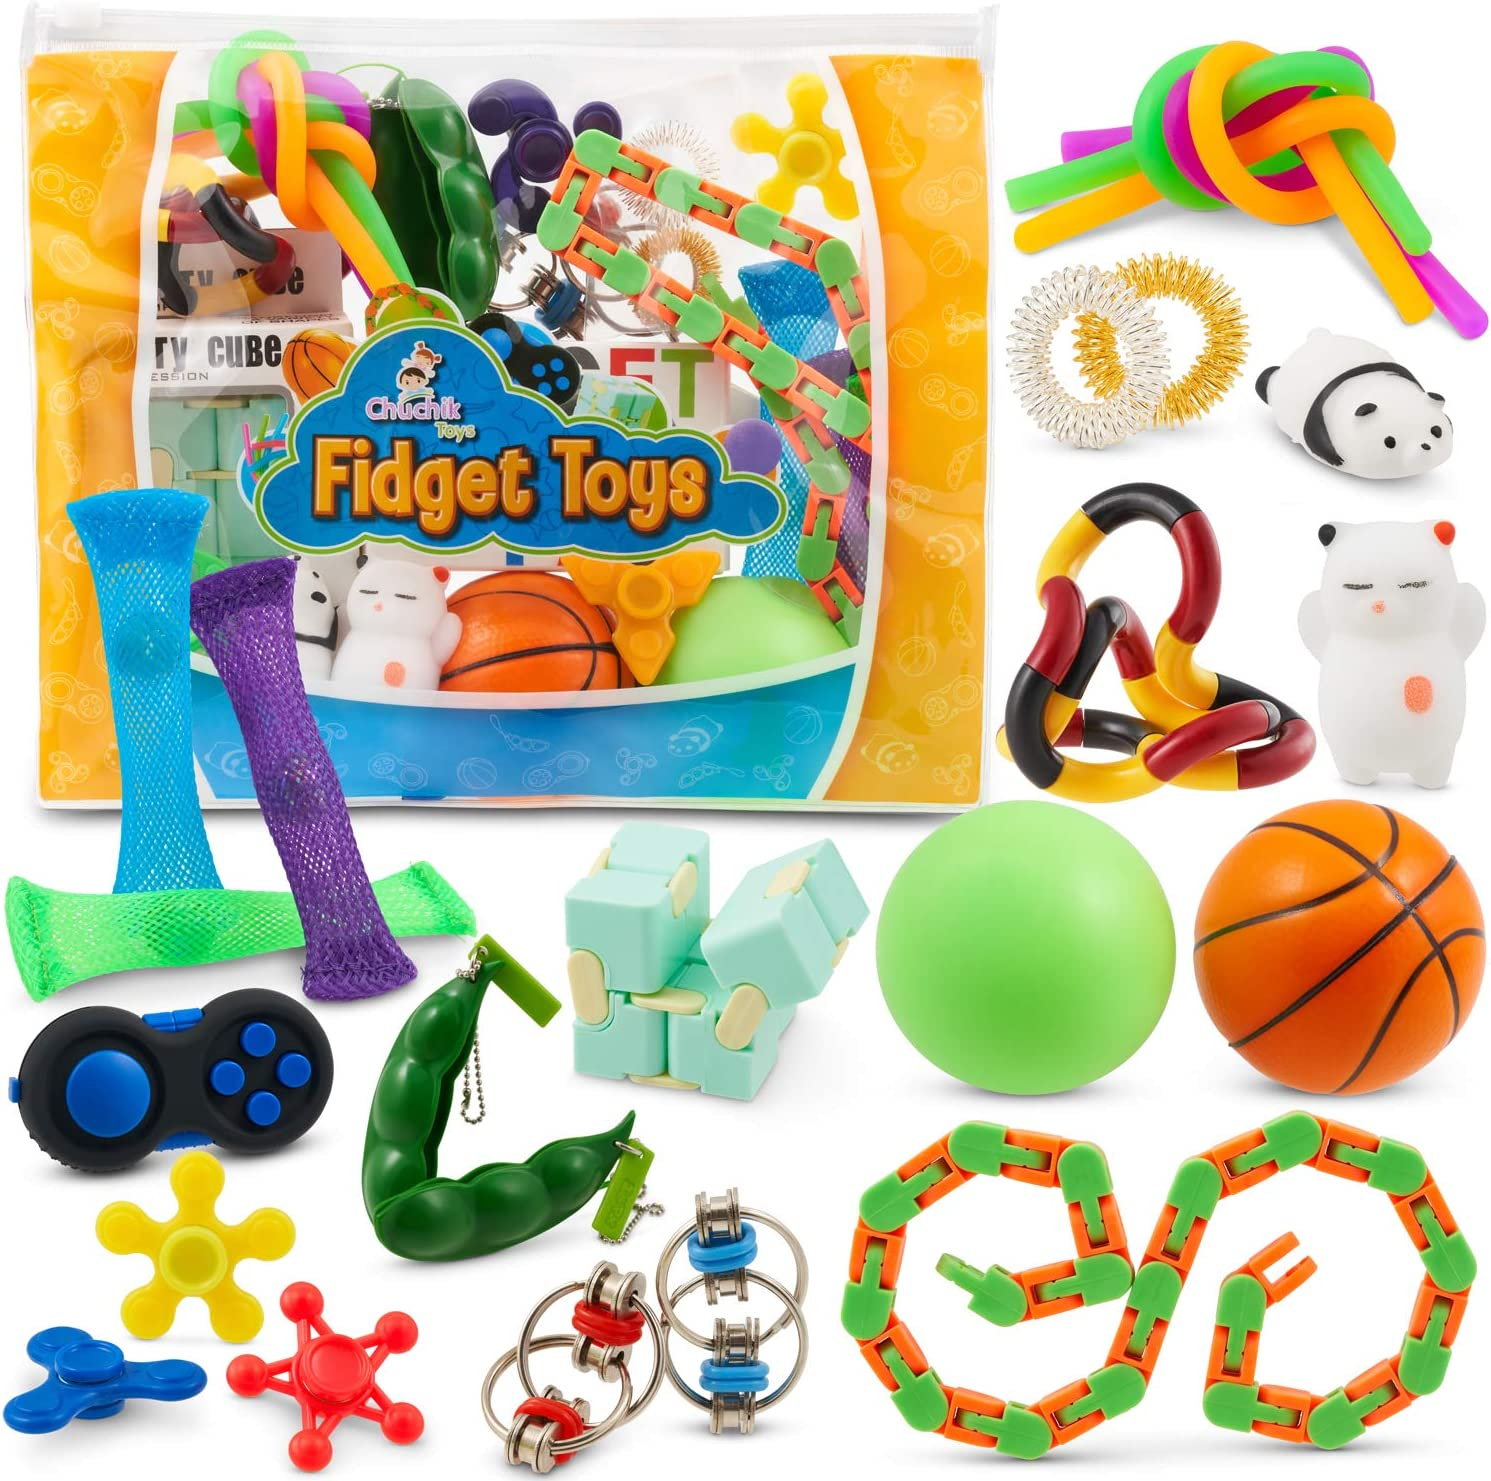 Sensory Fidget Toys 23-Pack – Stress Relief Toys for Focus & Calm – Toy Box & Party Favor Pack + Reusable Bag – Fidget Spinner, Stress Ball, Infinity Cube, Sensory Rings, & More by Chuchik